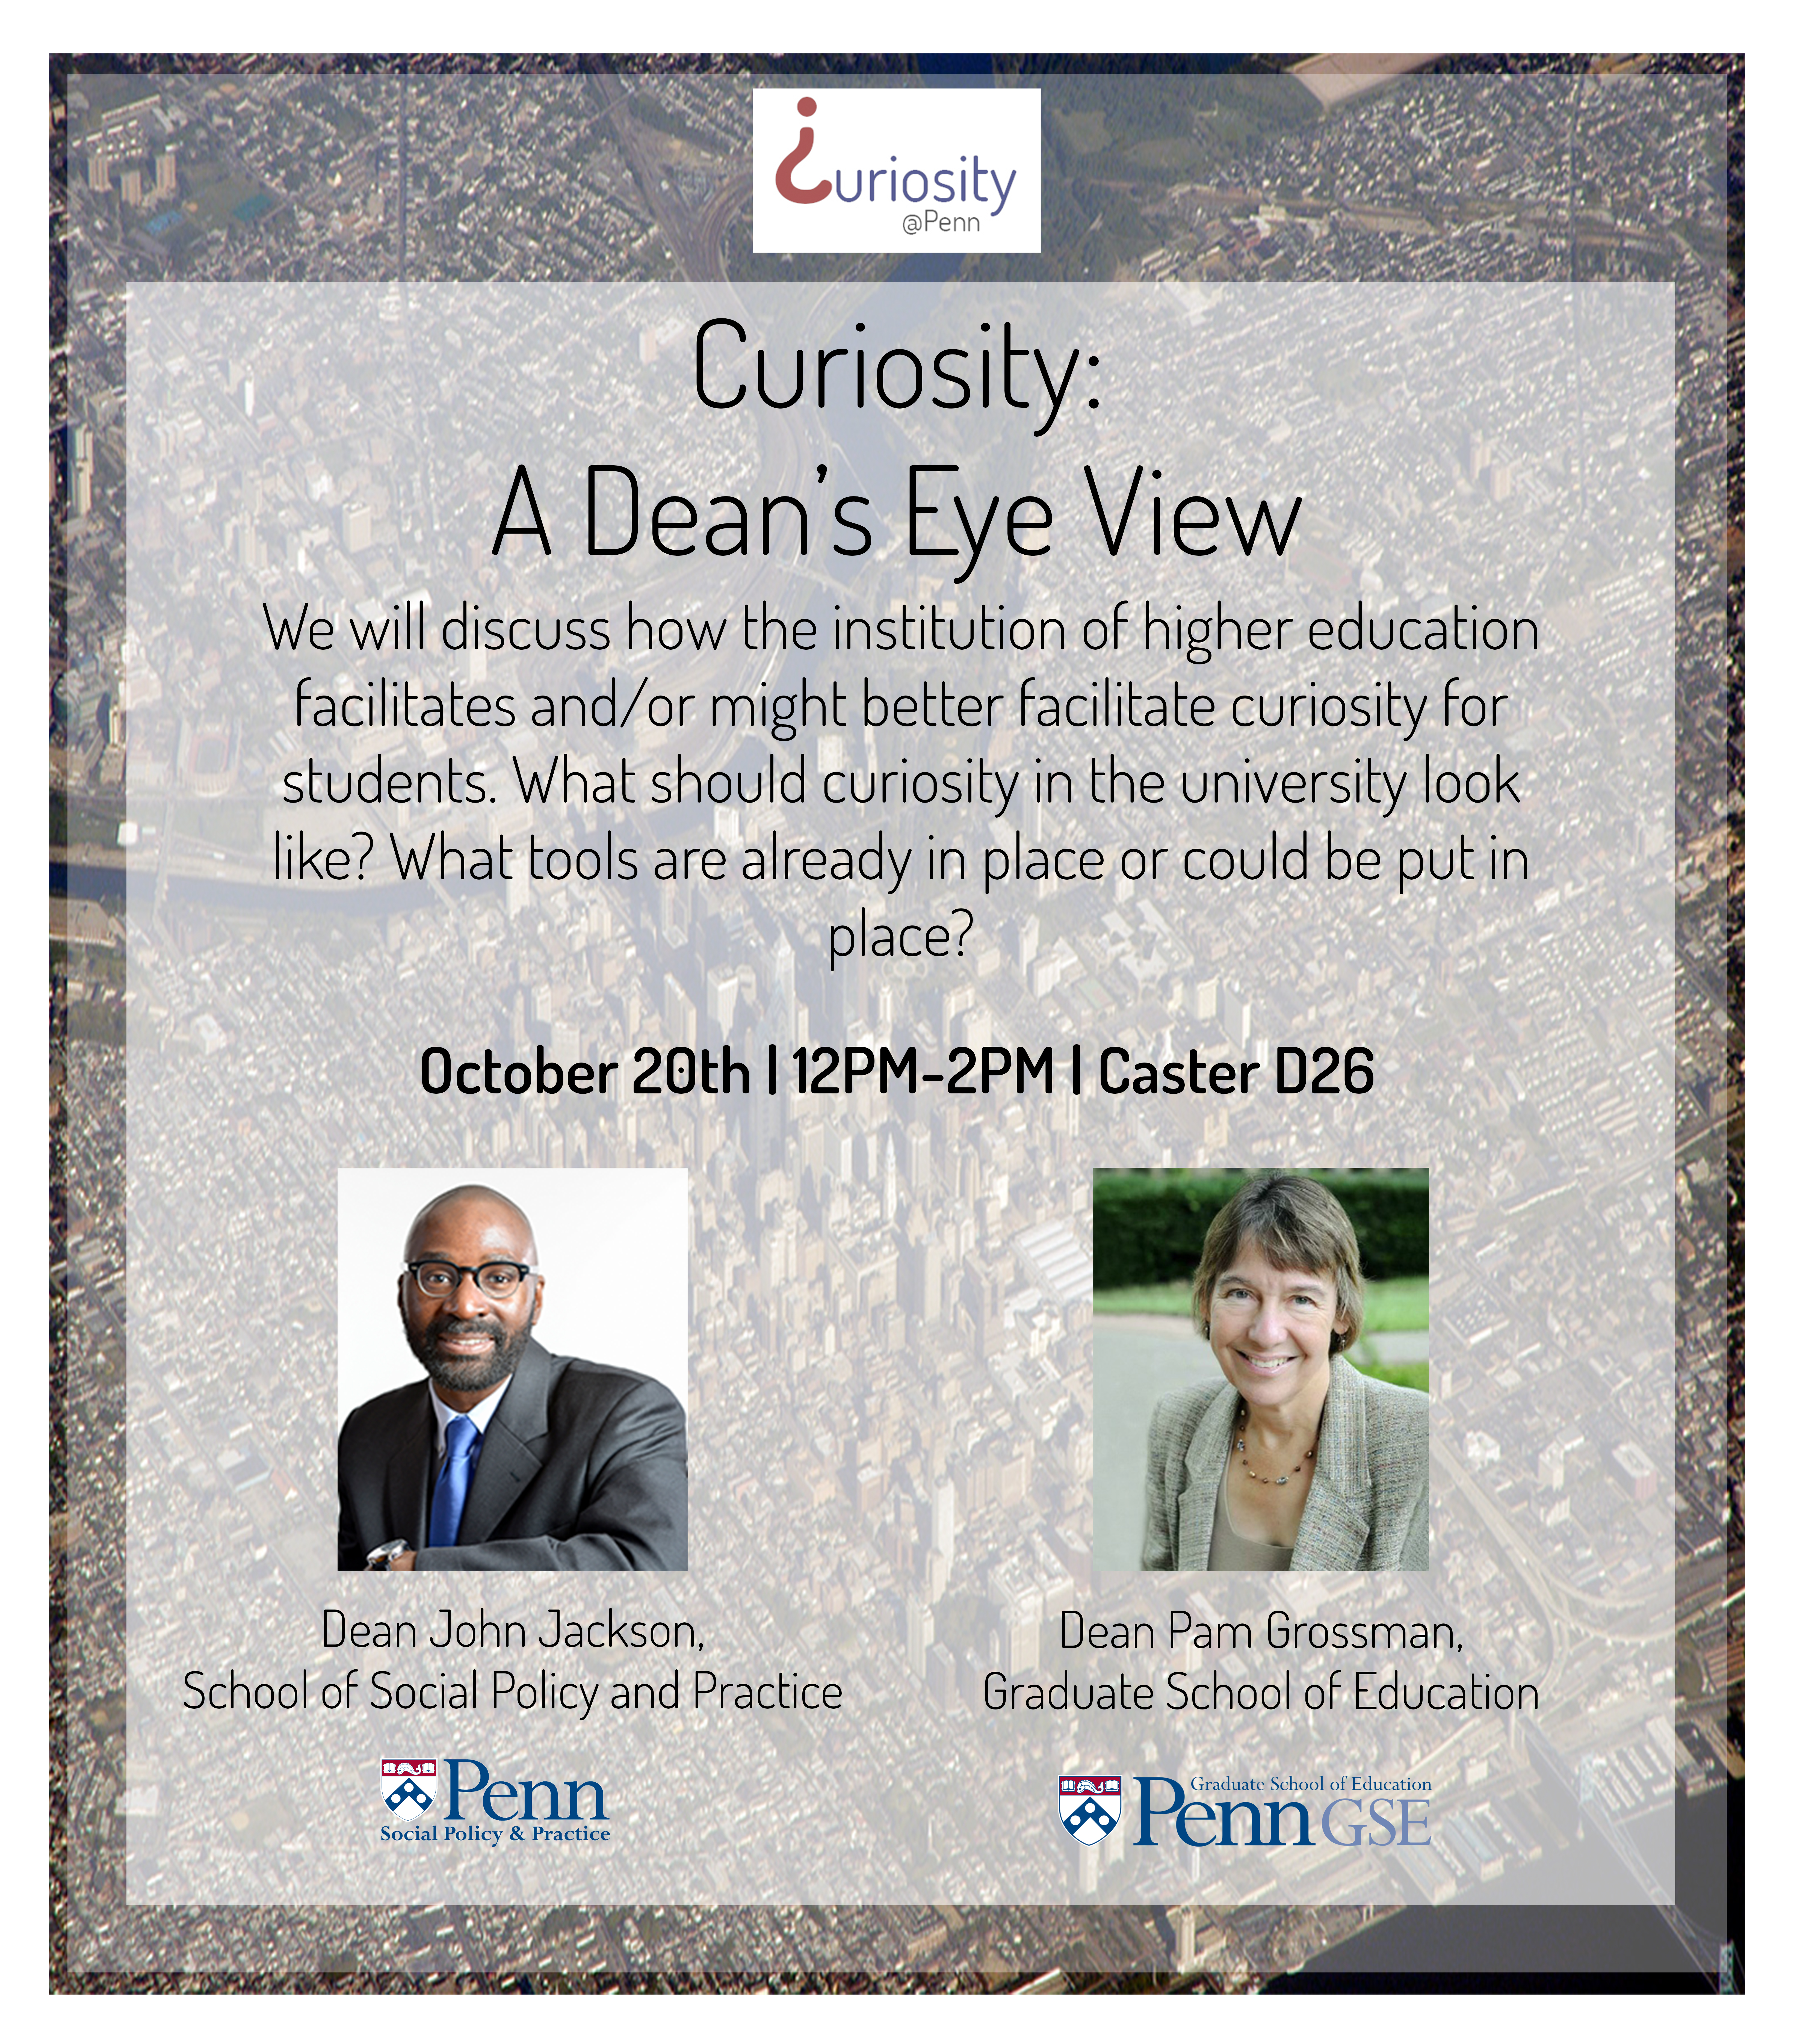 Flyer for Curiosity: A Dean's Eye View